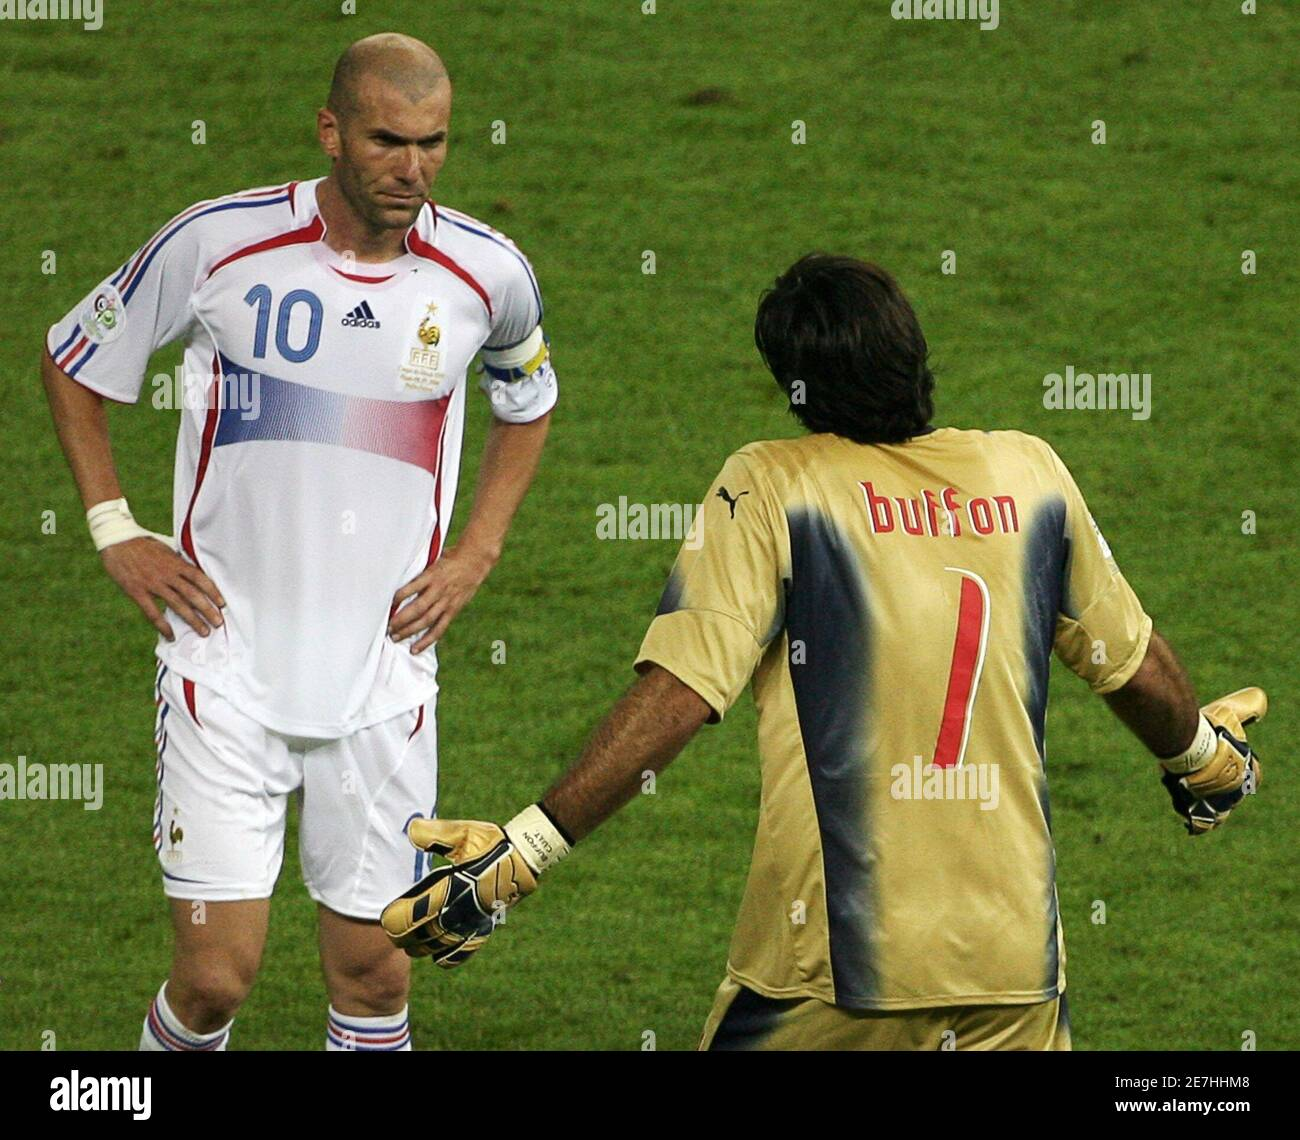 Zidane Materazzi High Resolution Stock Photography and Images - Alamy